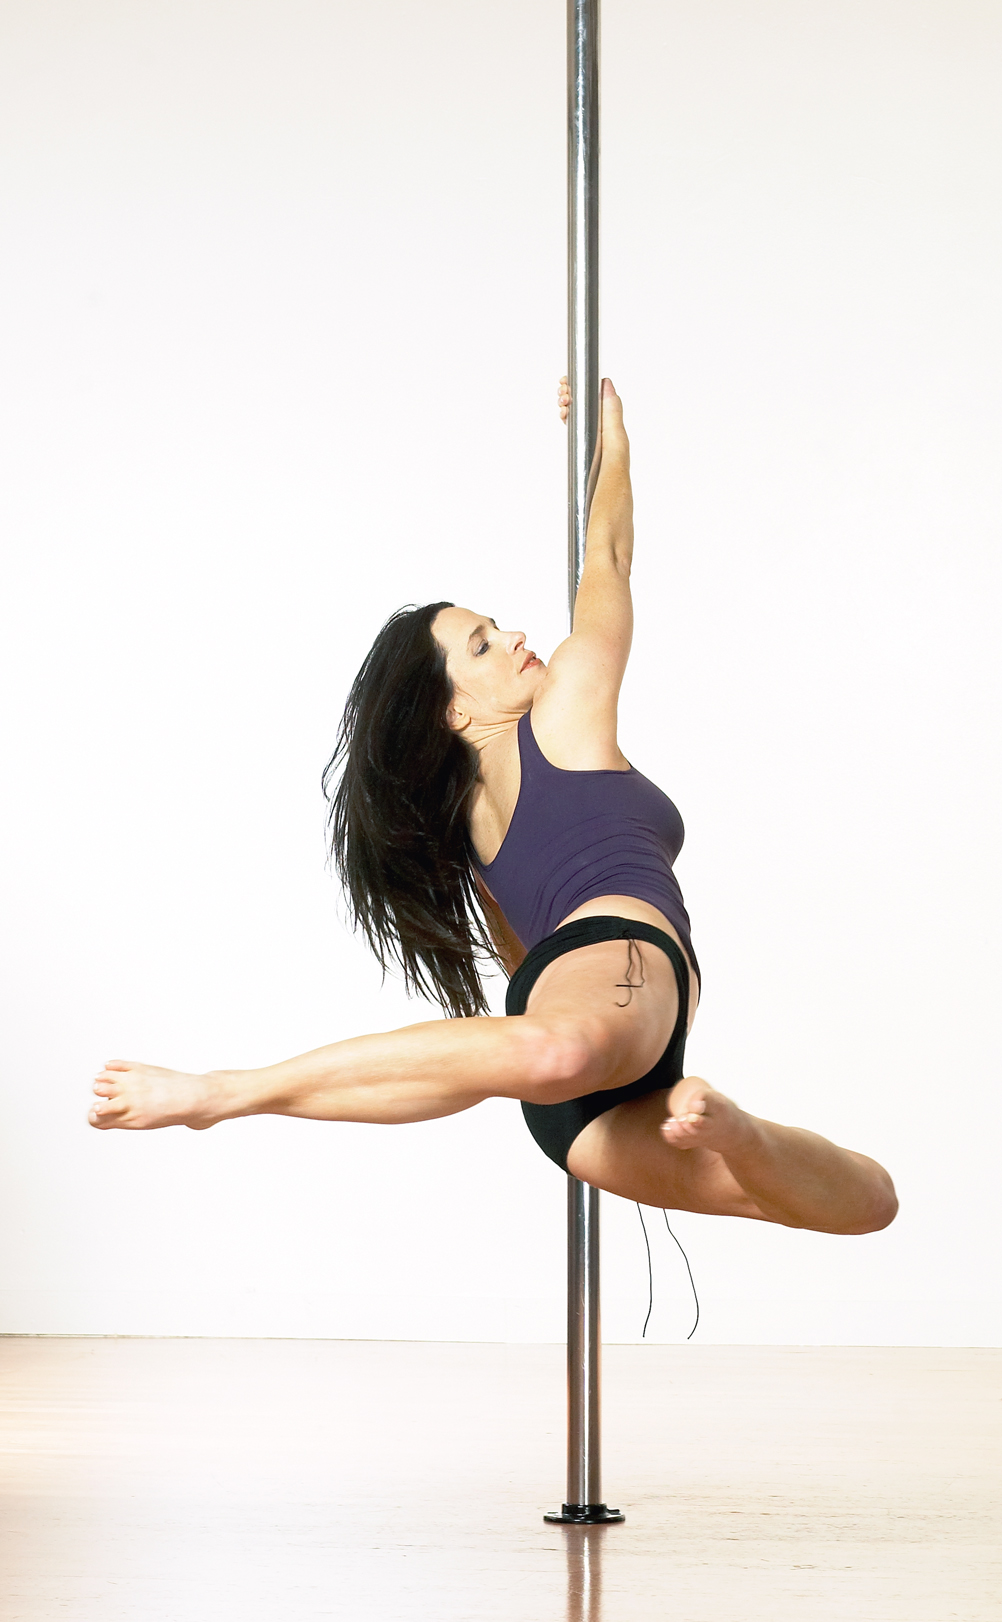 Image Result For Pole Dancing For Exercise